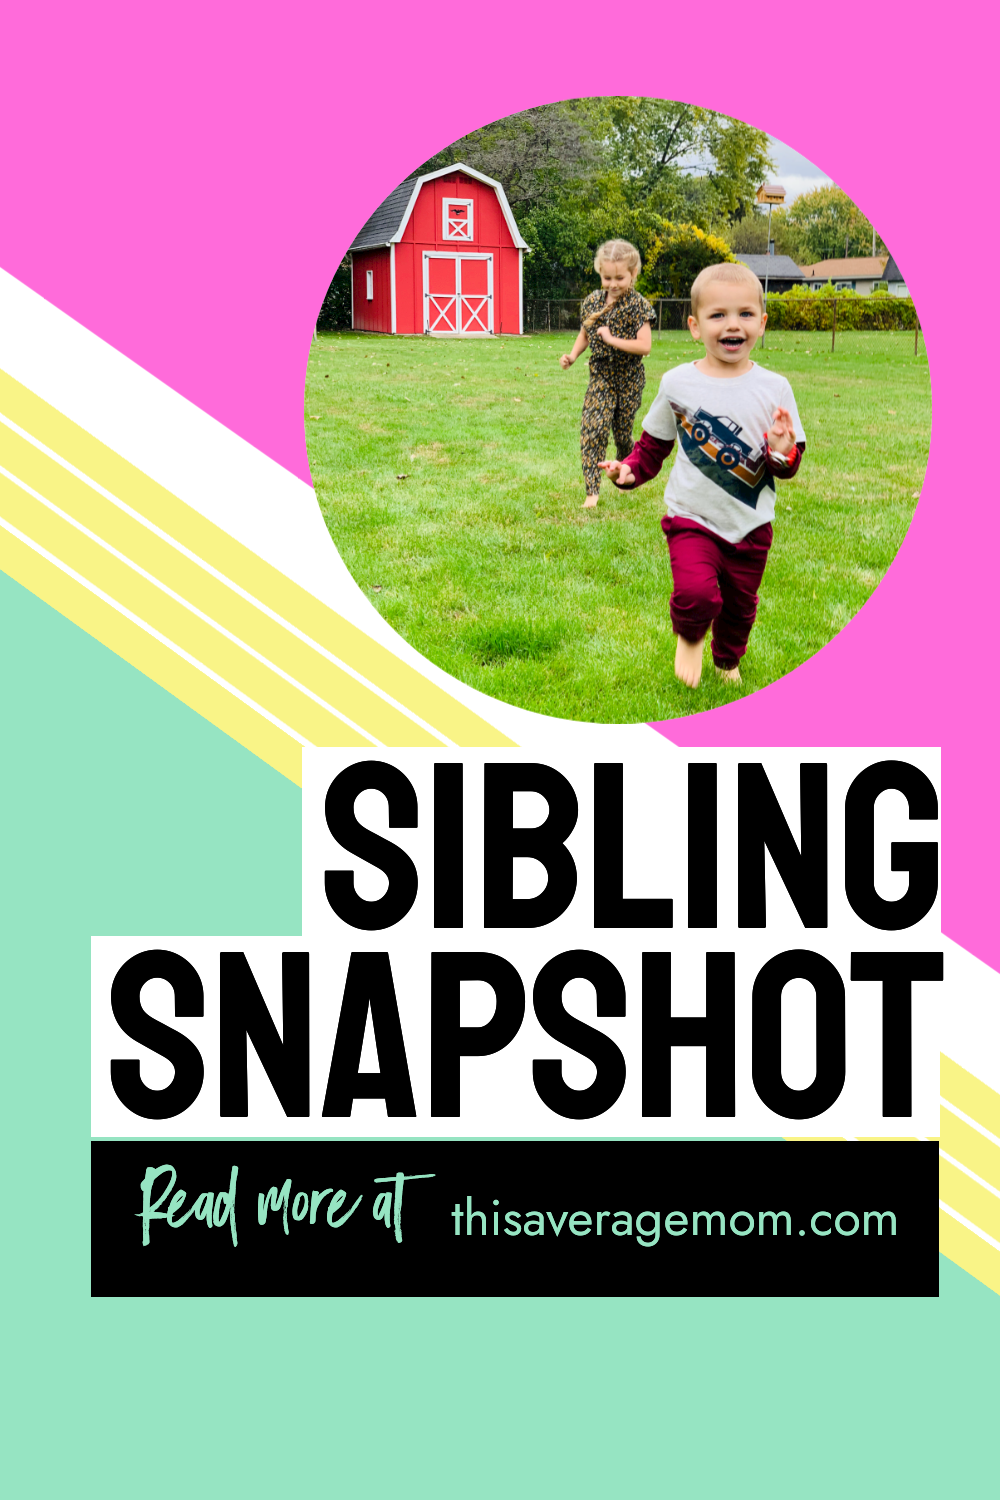 Sharing a bit about what my kids are like these days, at ages 6 and 3.